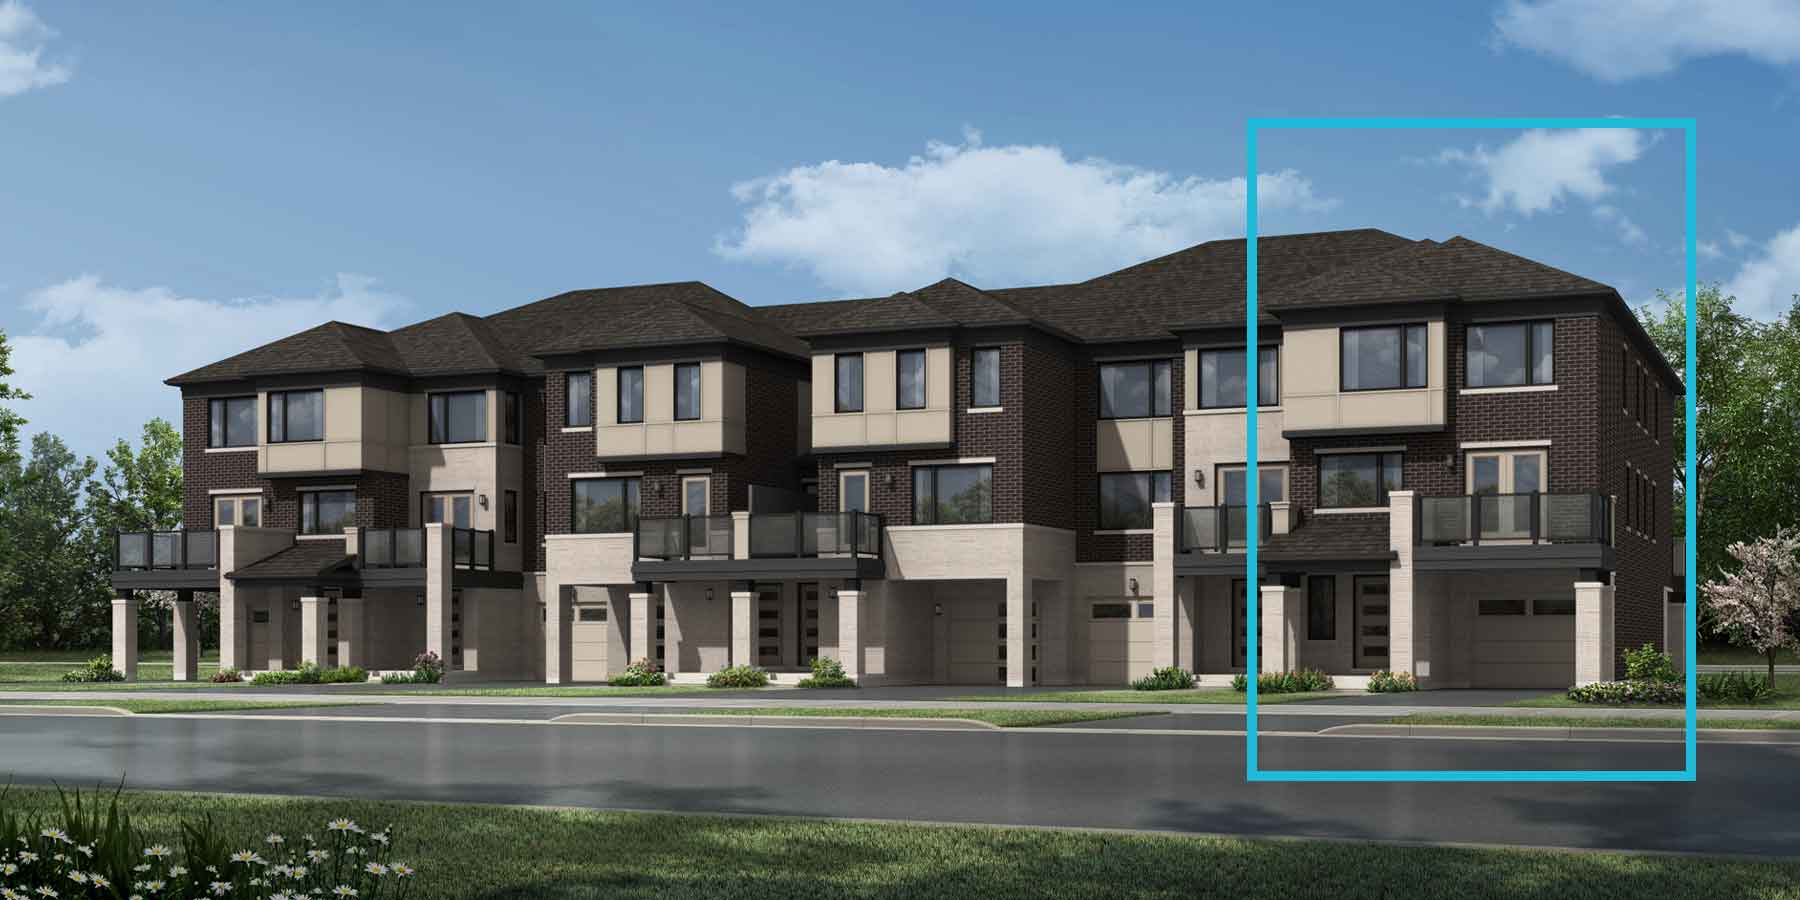 Watson End Plan TownHomes at Seaton Whitevale in Pickering Ontario by Mattamy Homes